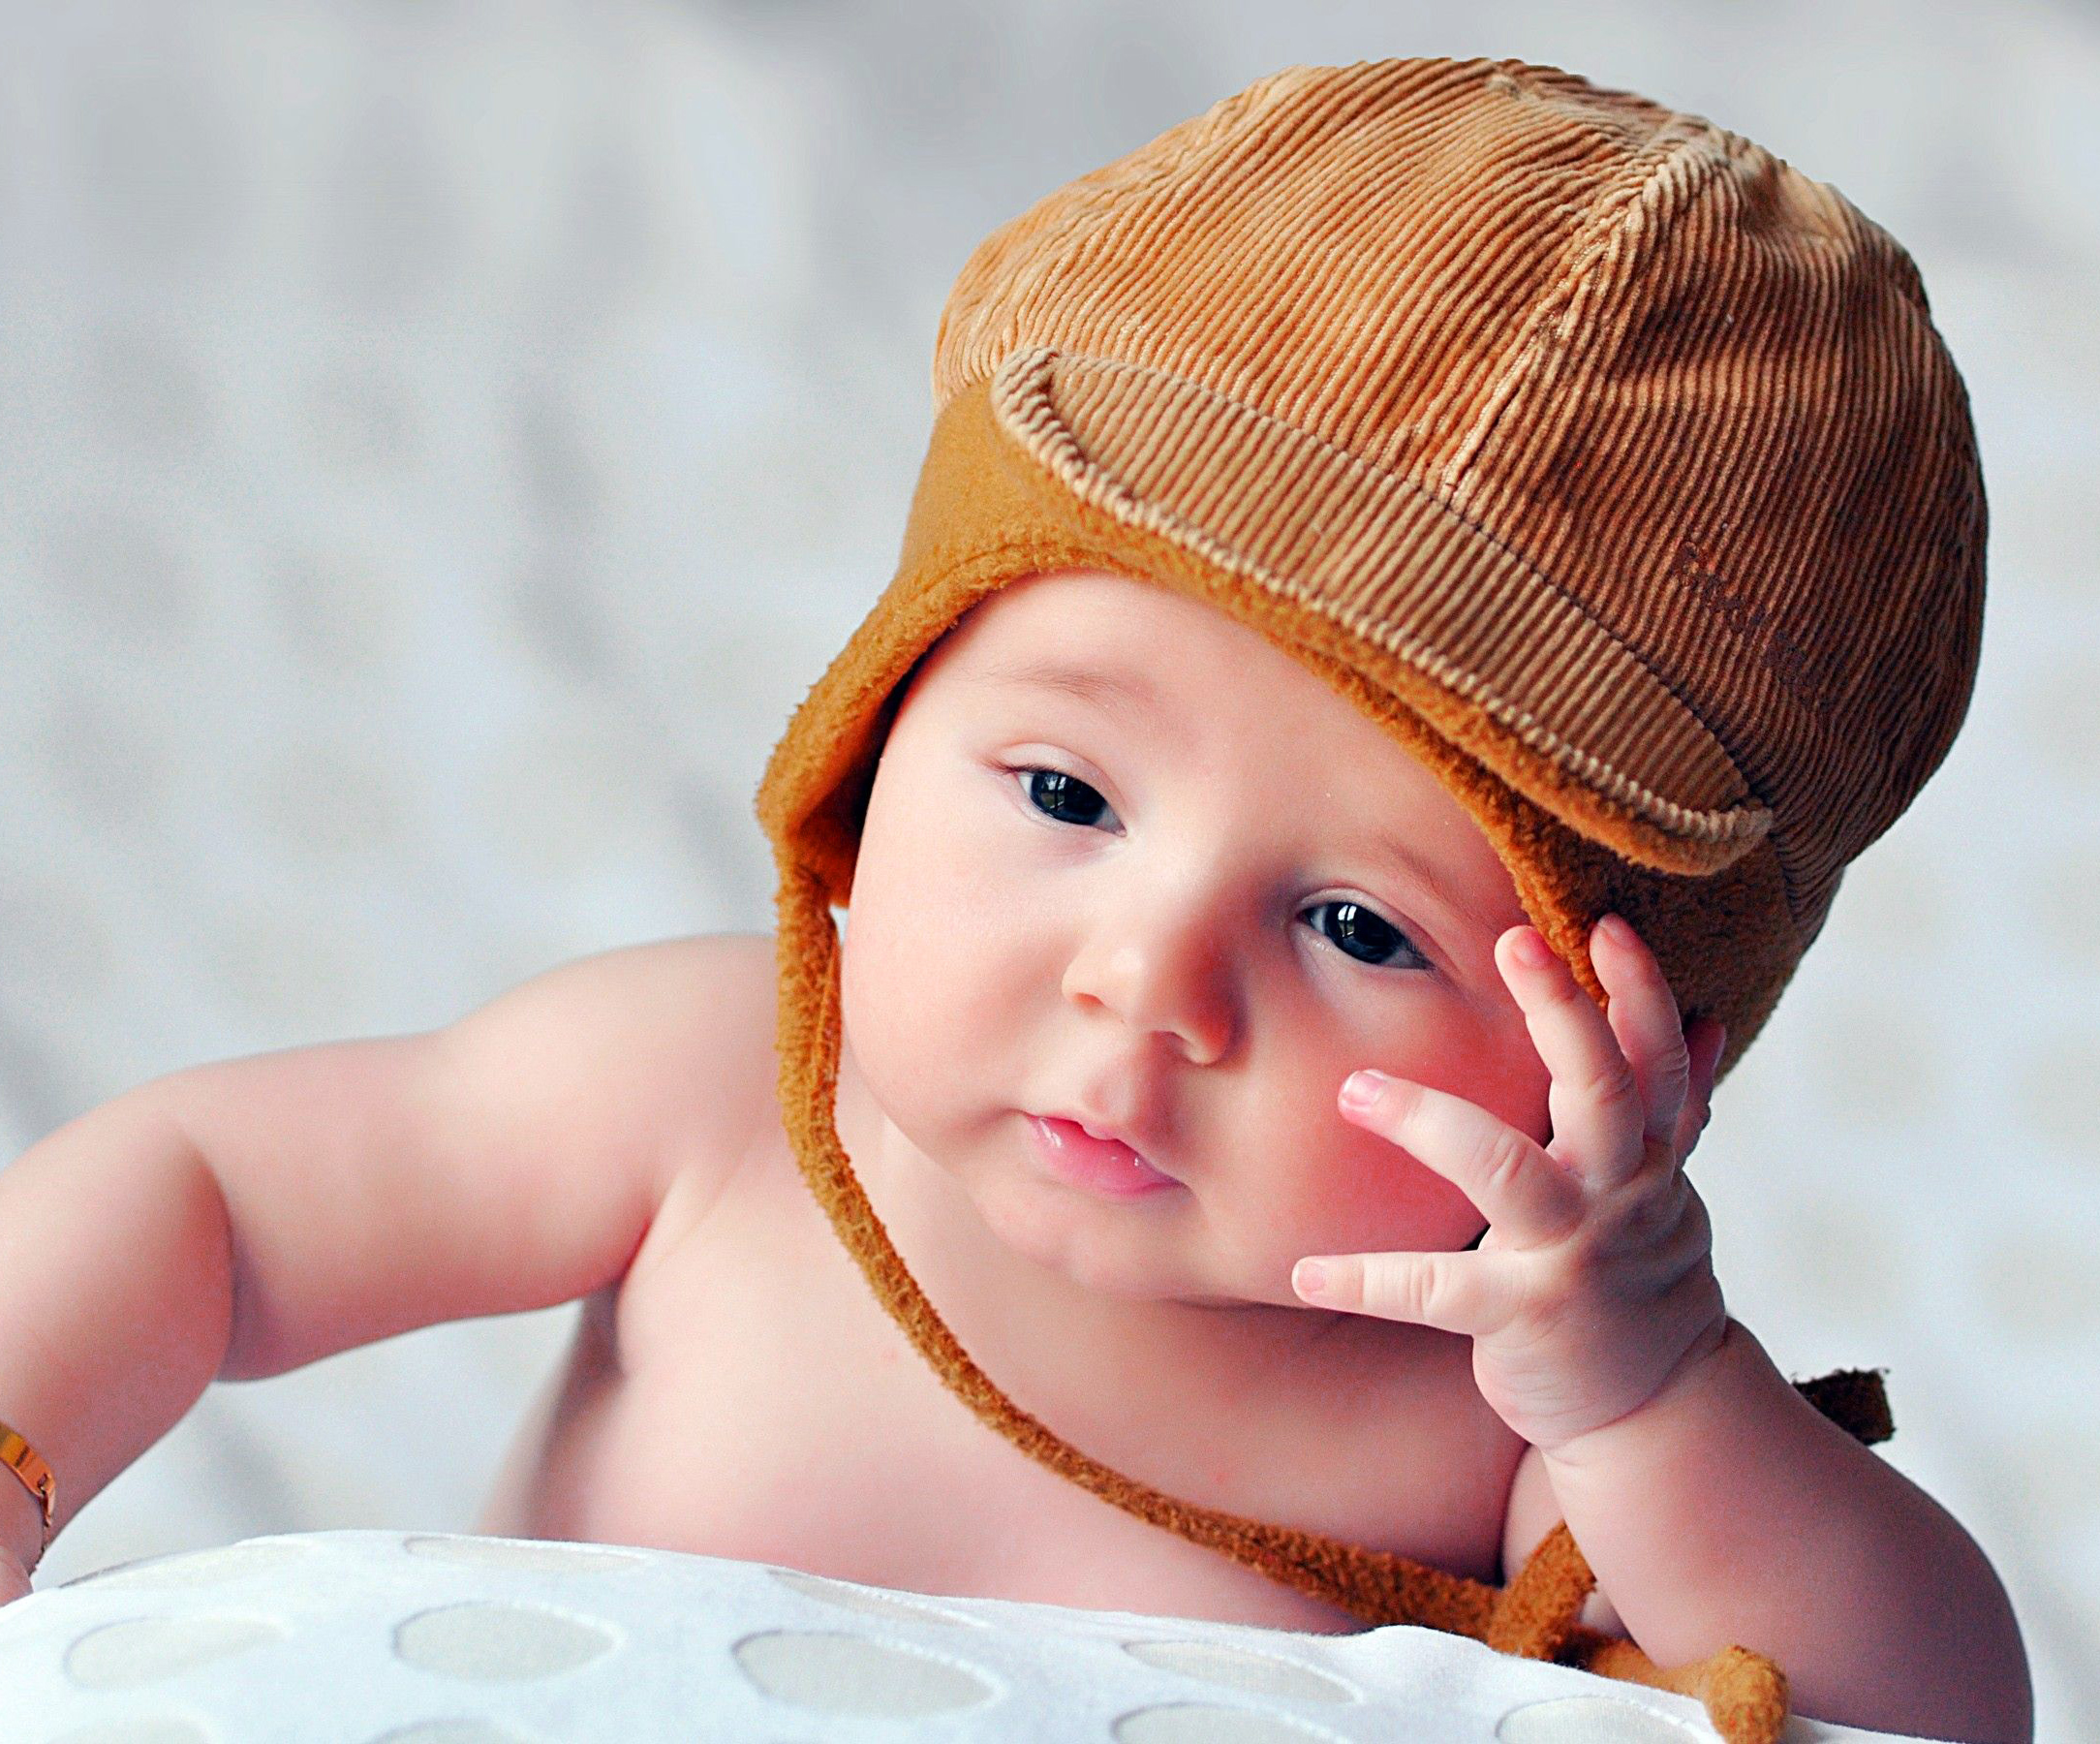 Cute Baby Boy Images  Photo Wallpaper Pictures Pics HD